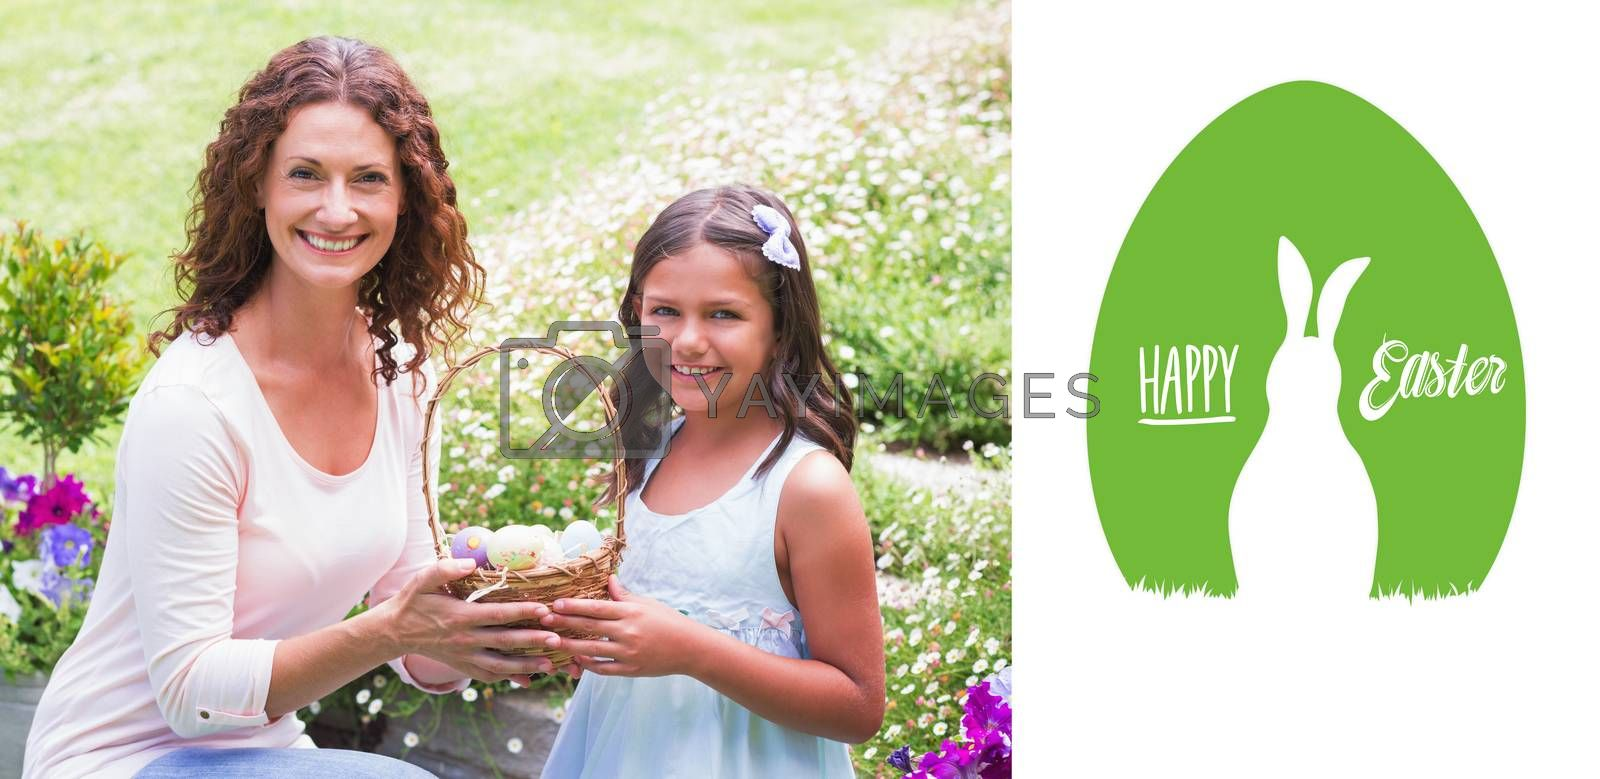 Happy mother and daughter collecting easter eggs against happy easter graphic